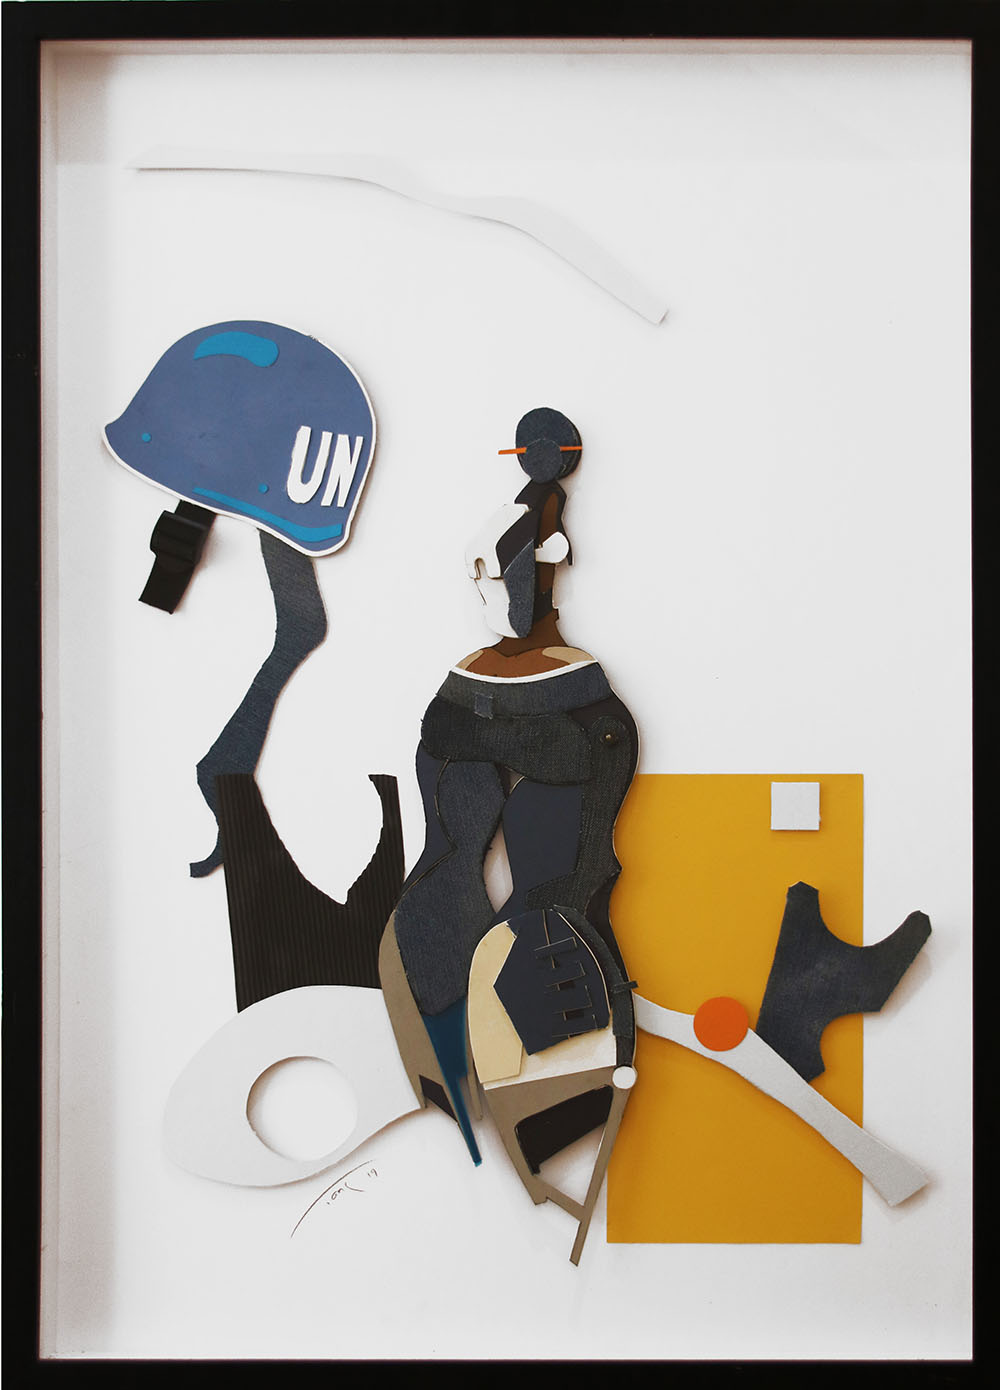 Patrick Tankama Turning your back on the UN 2019 Paper collage 84.1 x 59.4 cm